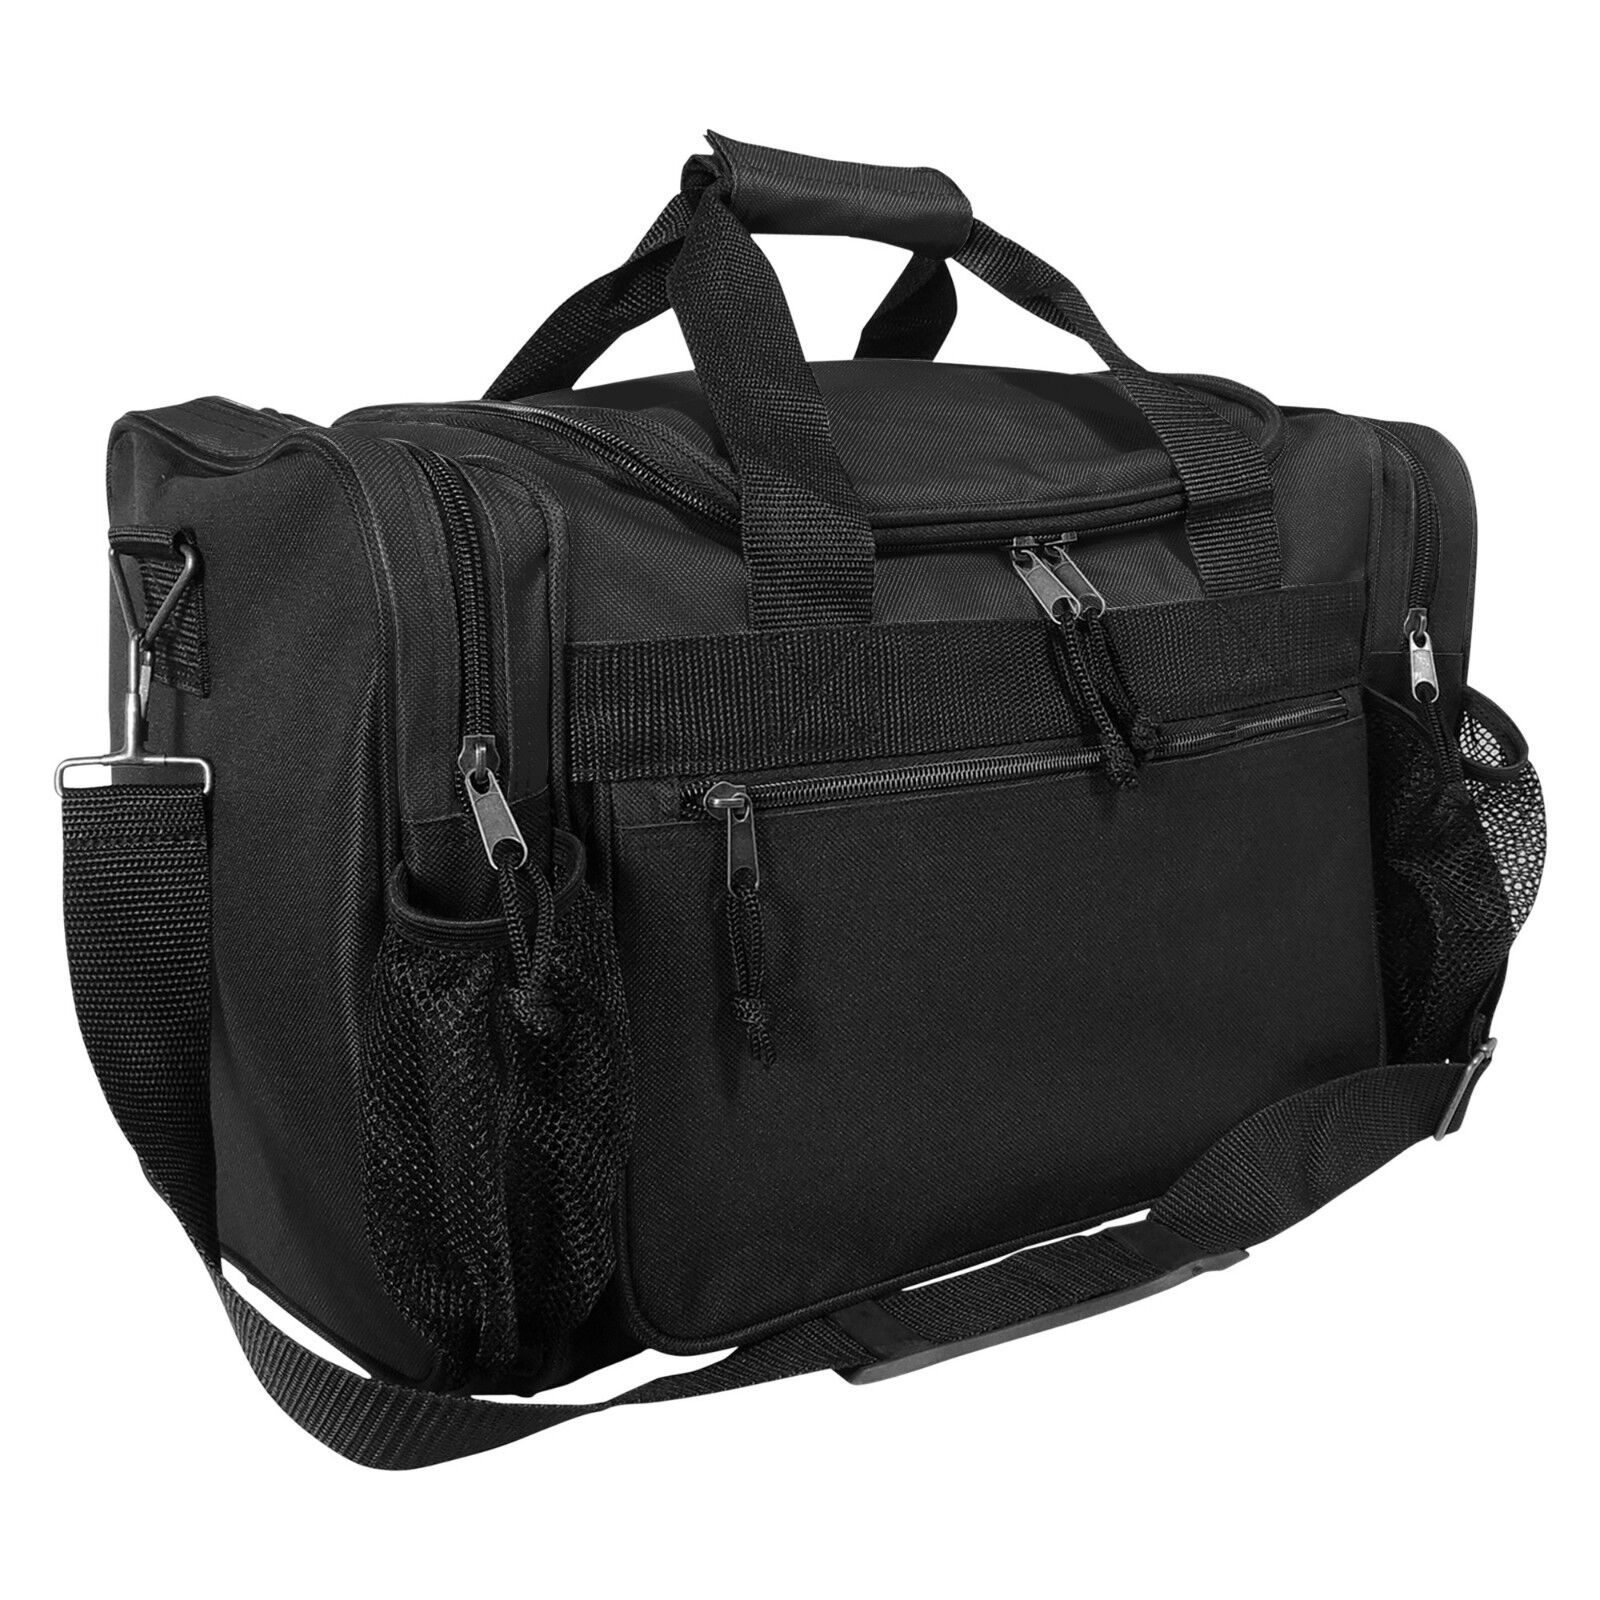 "DALIX 15"" Duffle Bag Dual Front Mesh Accessories Pockets in"